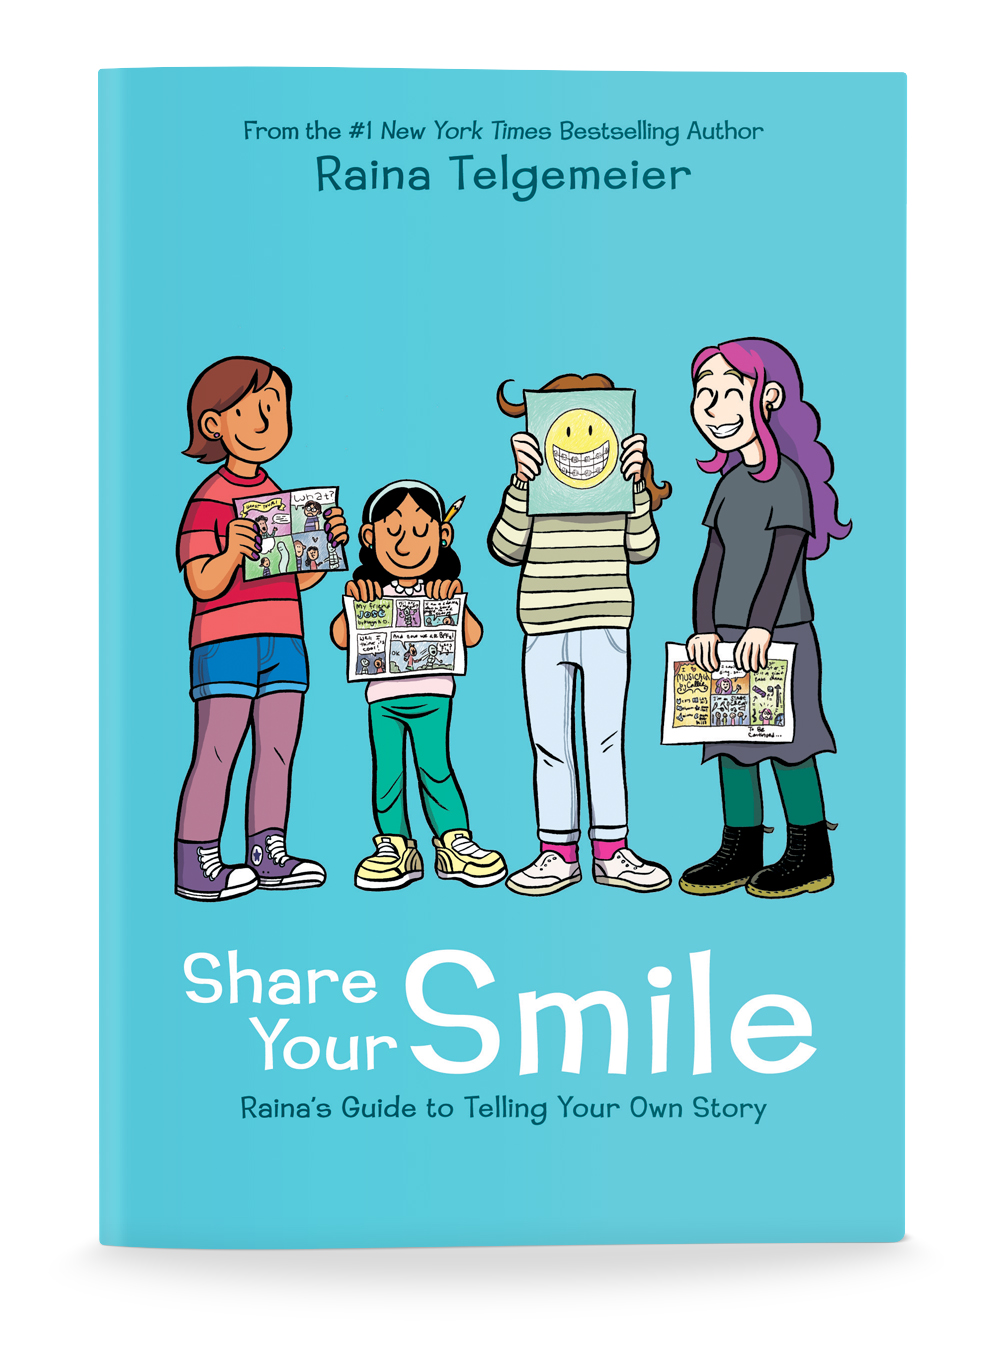 SHARE_YOUR_SMILE_cover_shadow.jpg